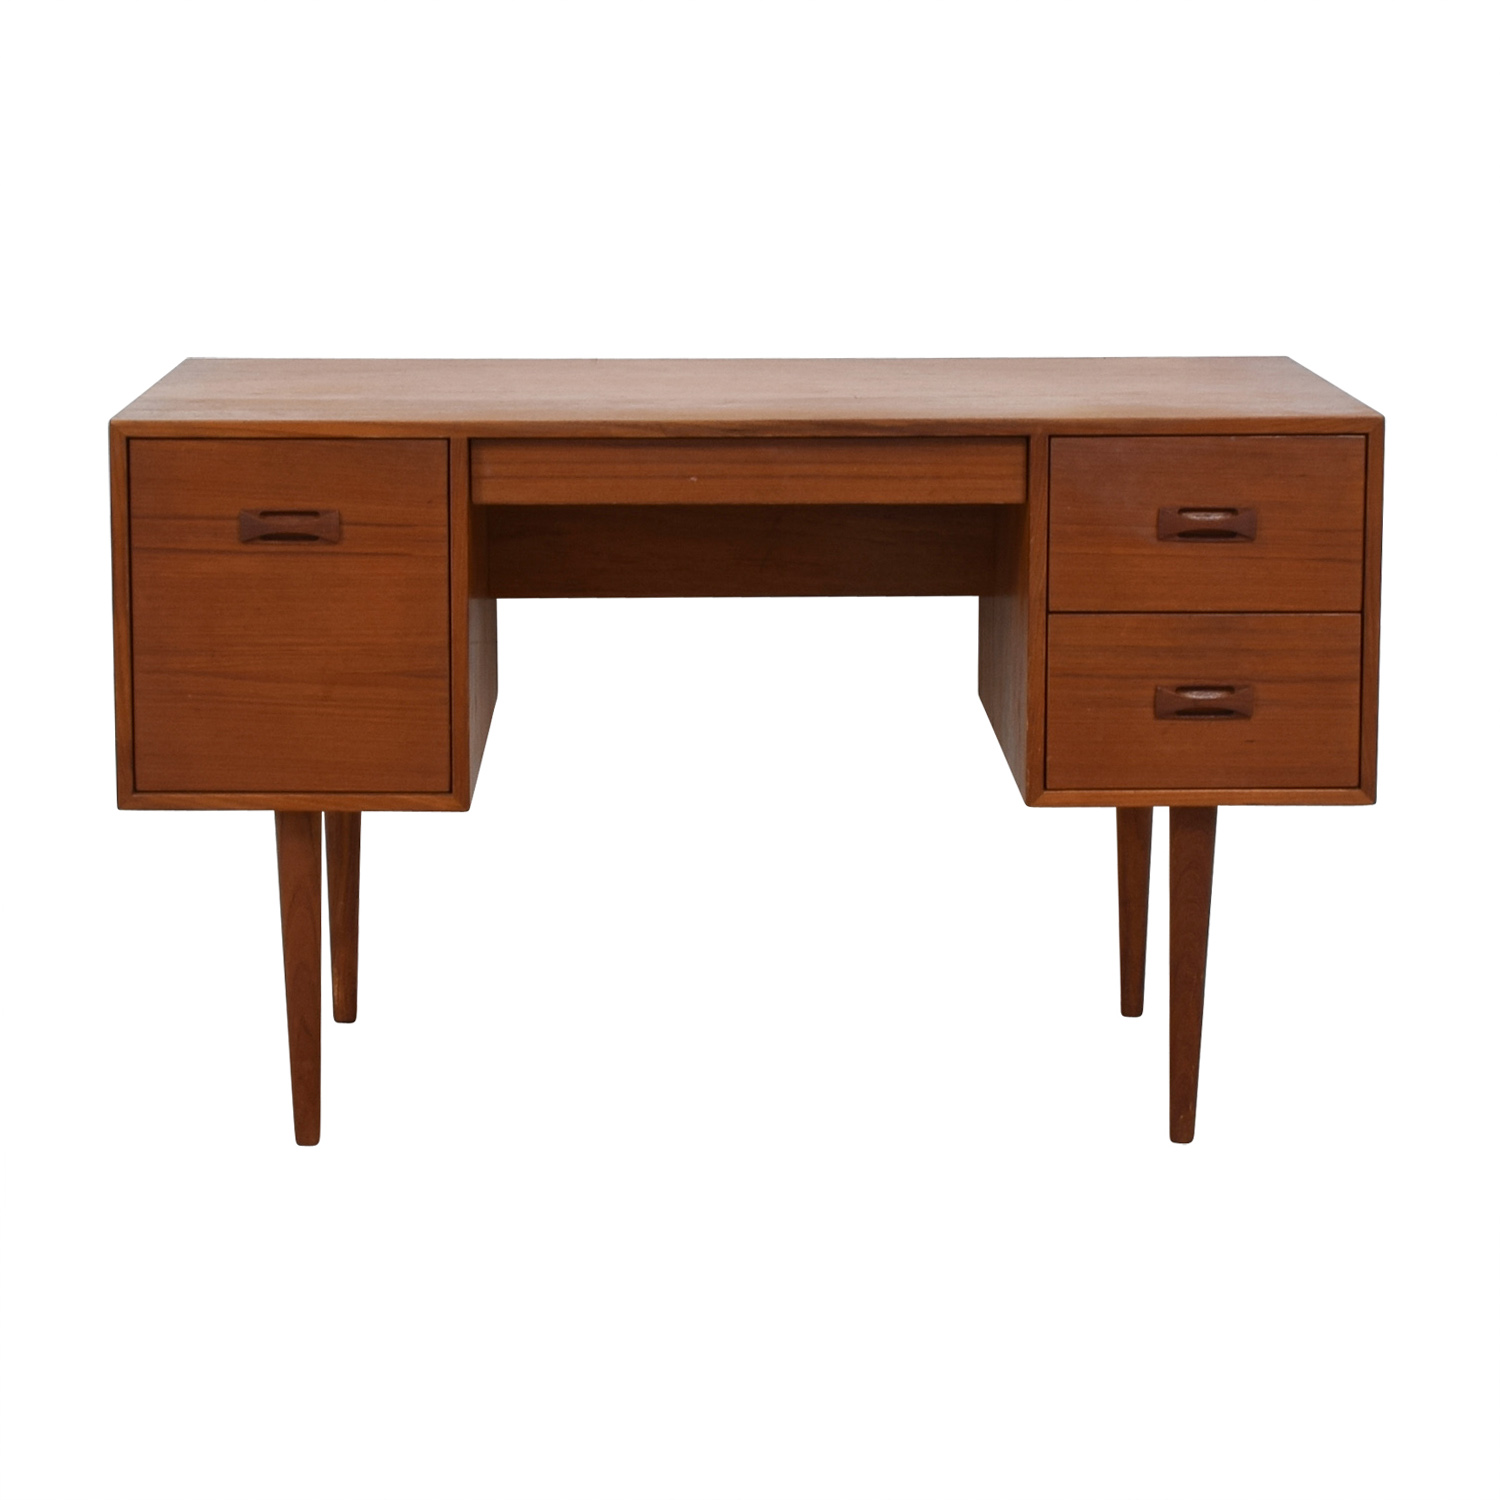 Mid-Century Danish Teak Desk price